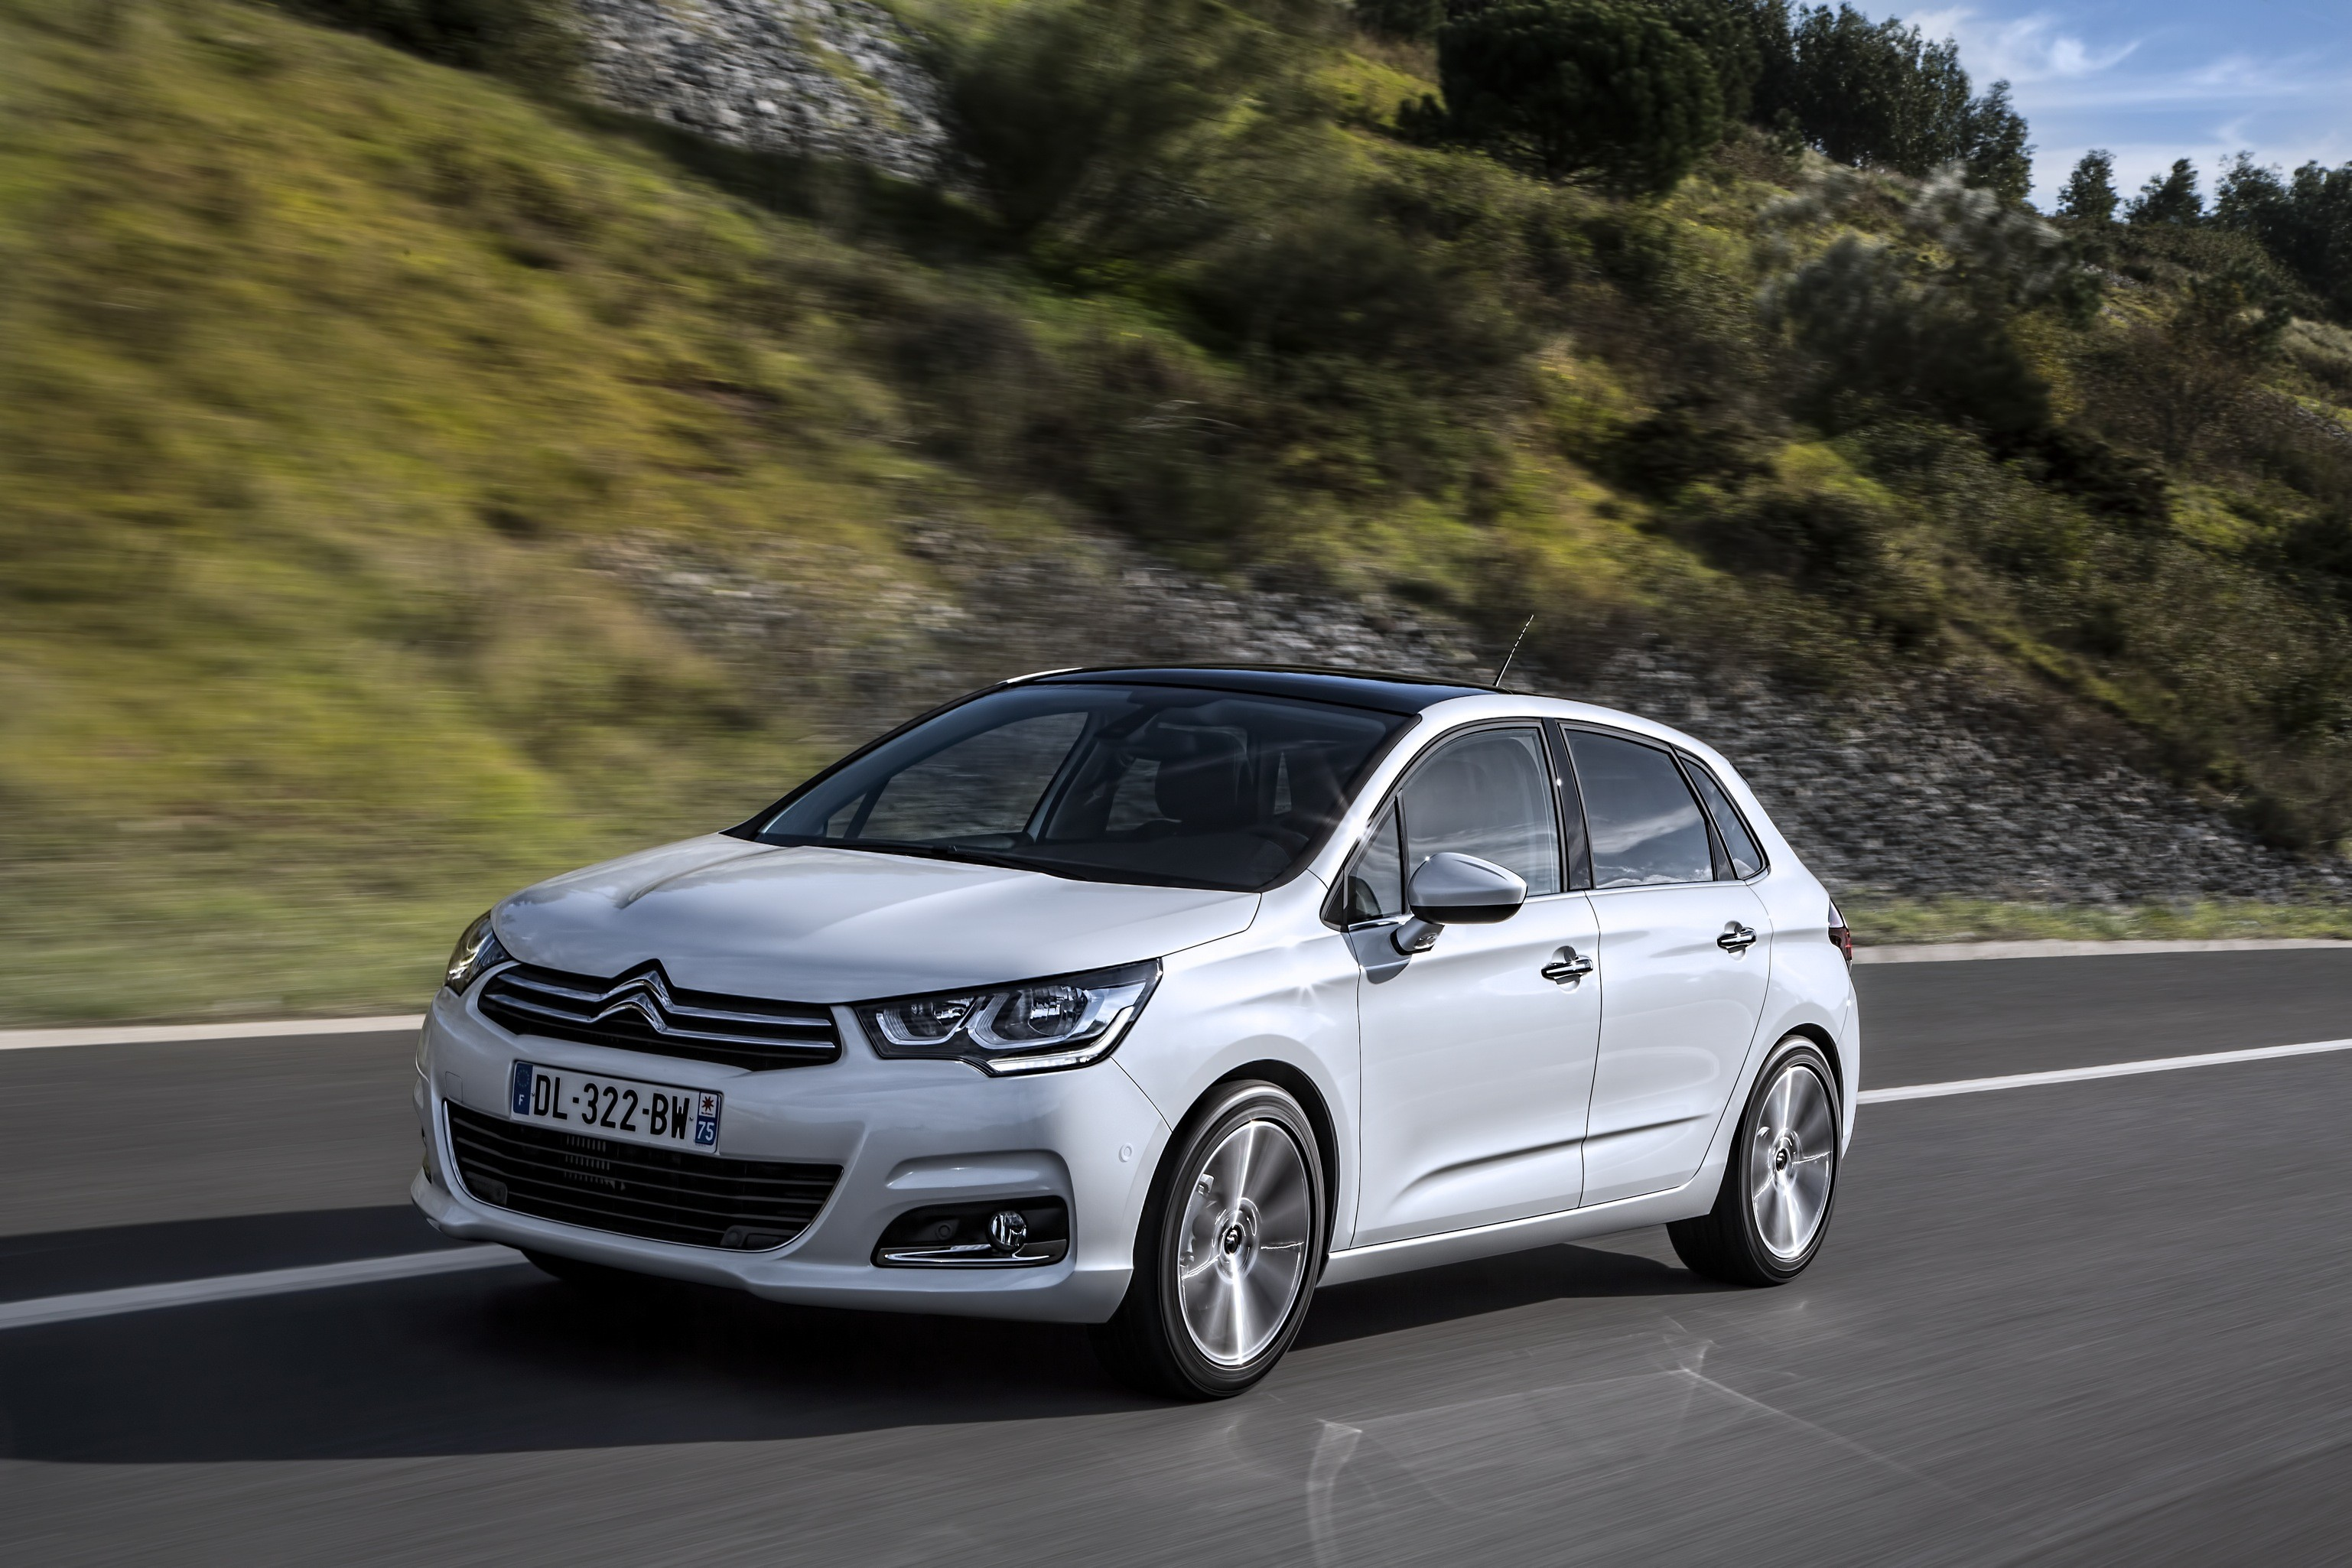 49 A 2020 Citroen C4 Wallpaper